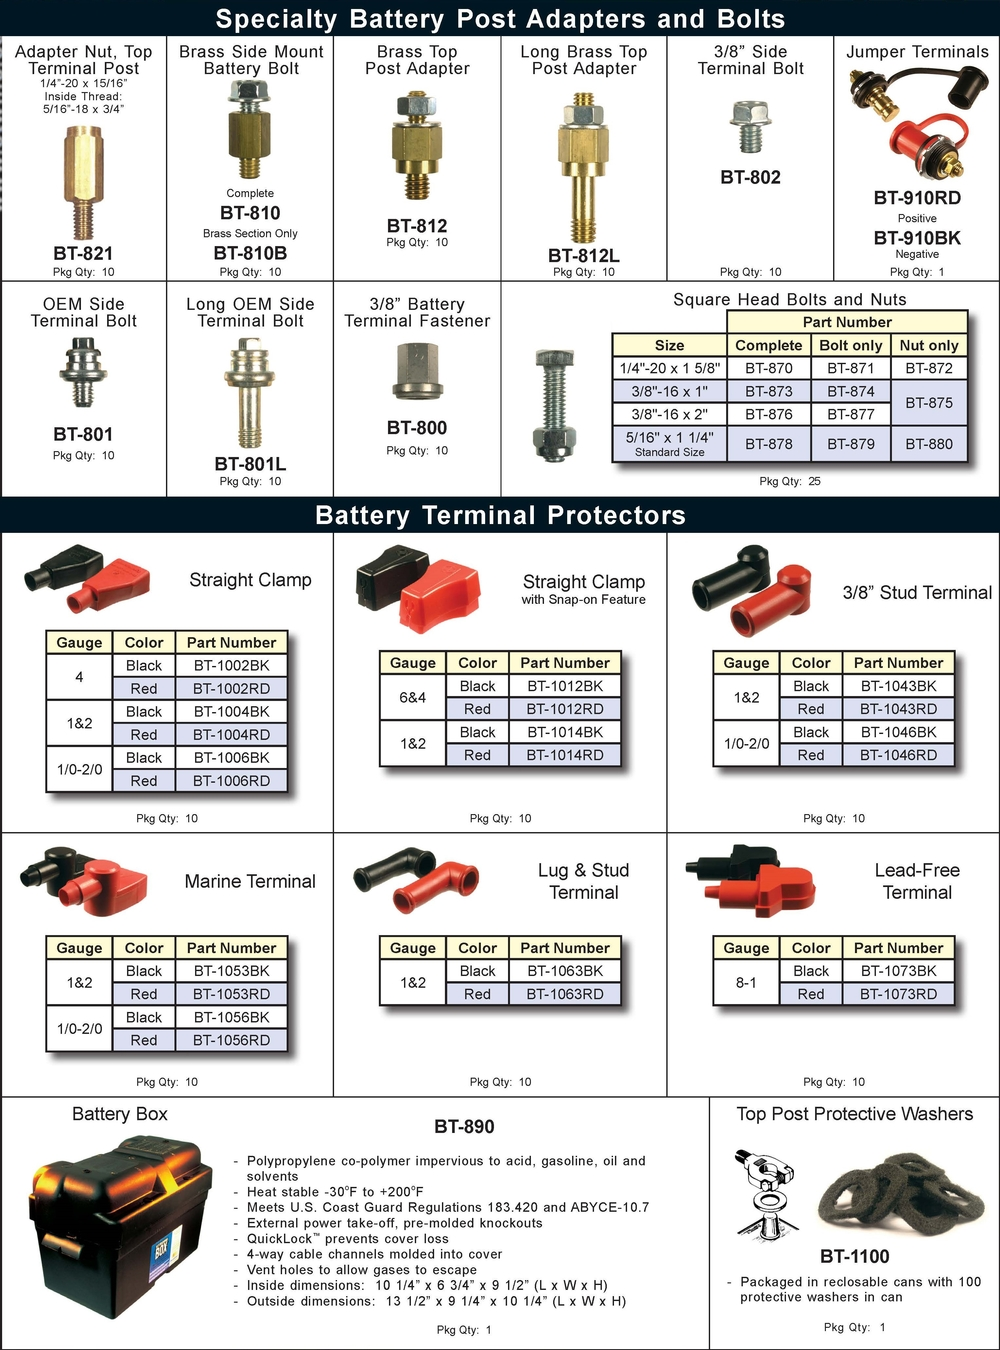 Battery Adapters and Accessories